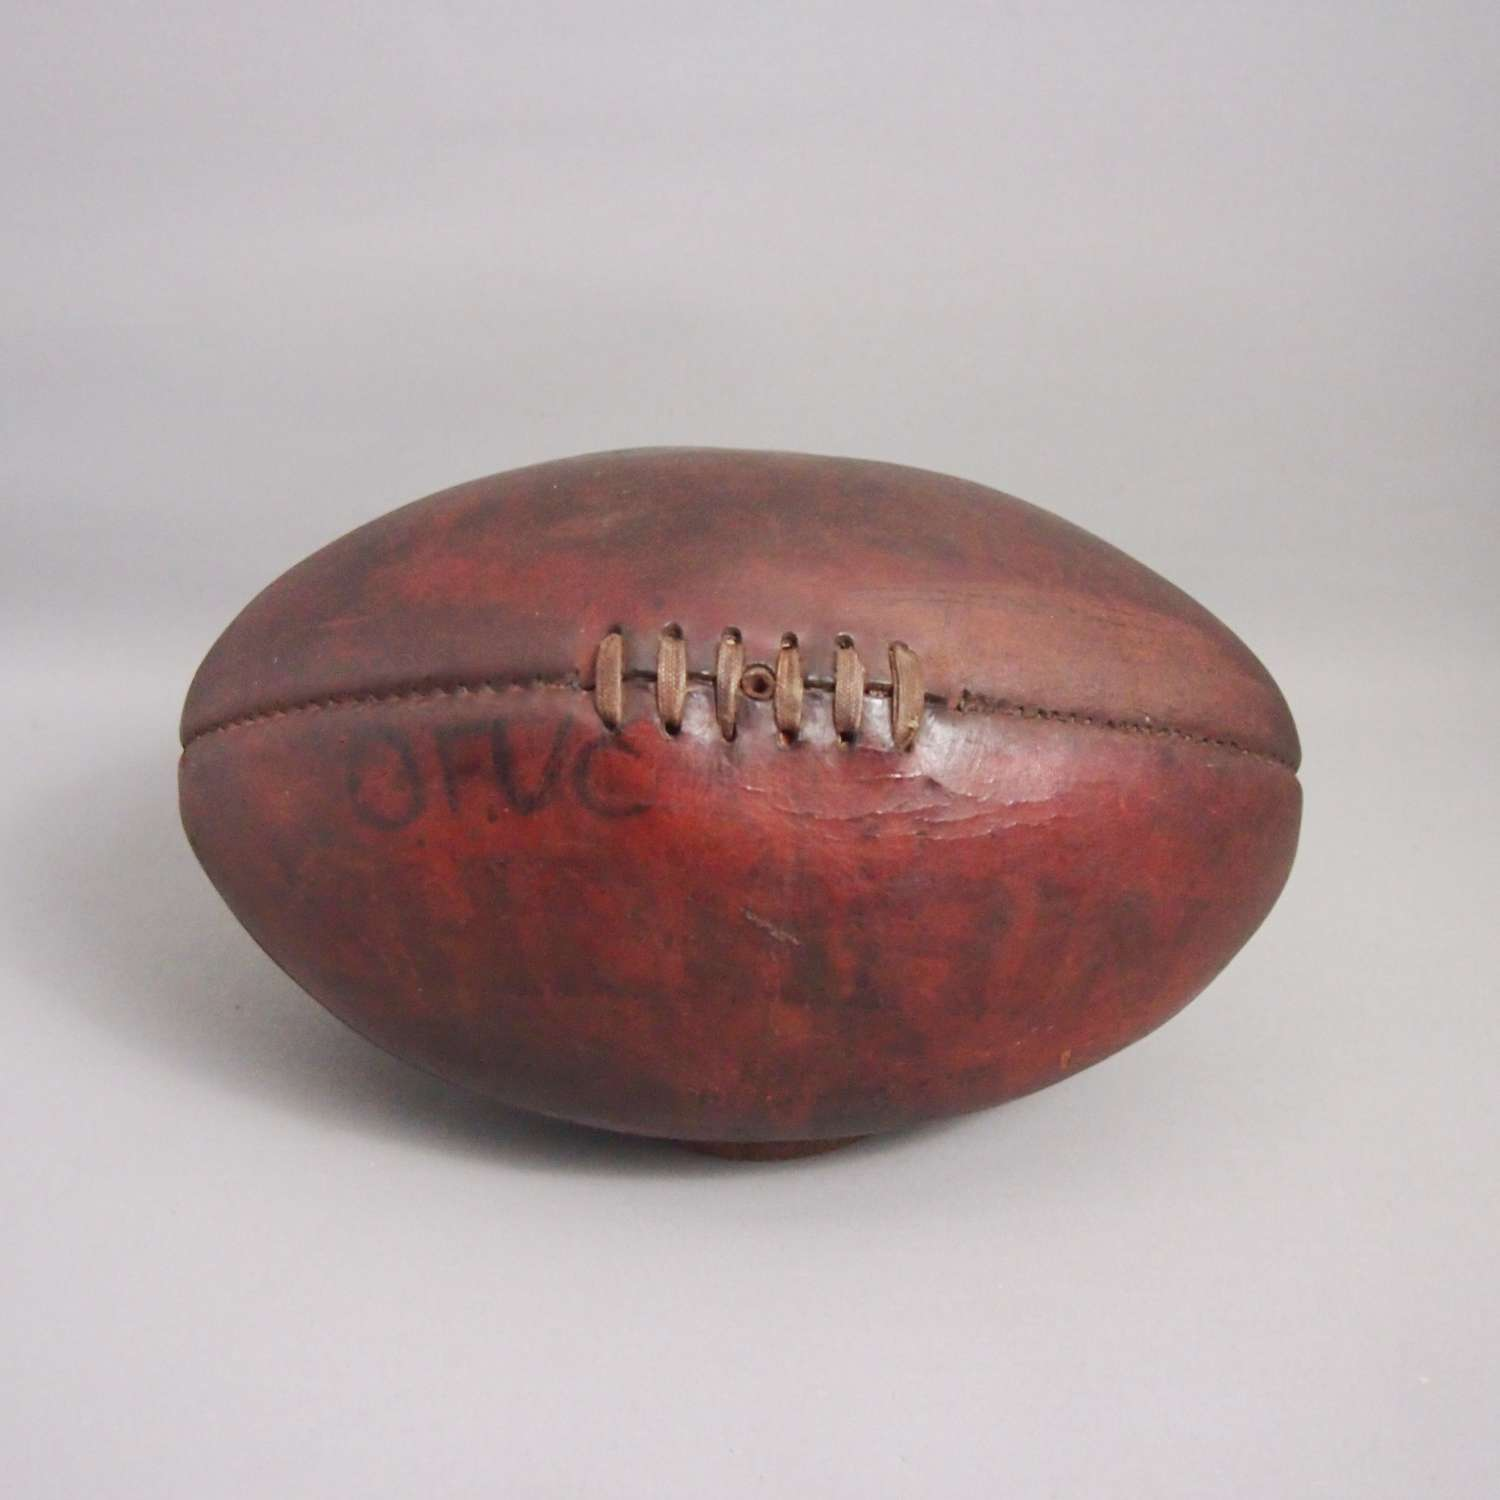 Vintage Original Leather Rugby Ball. W8655